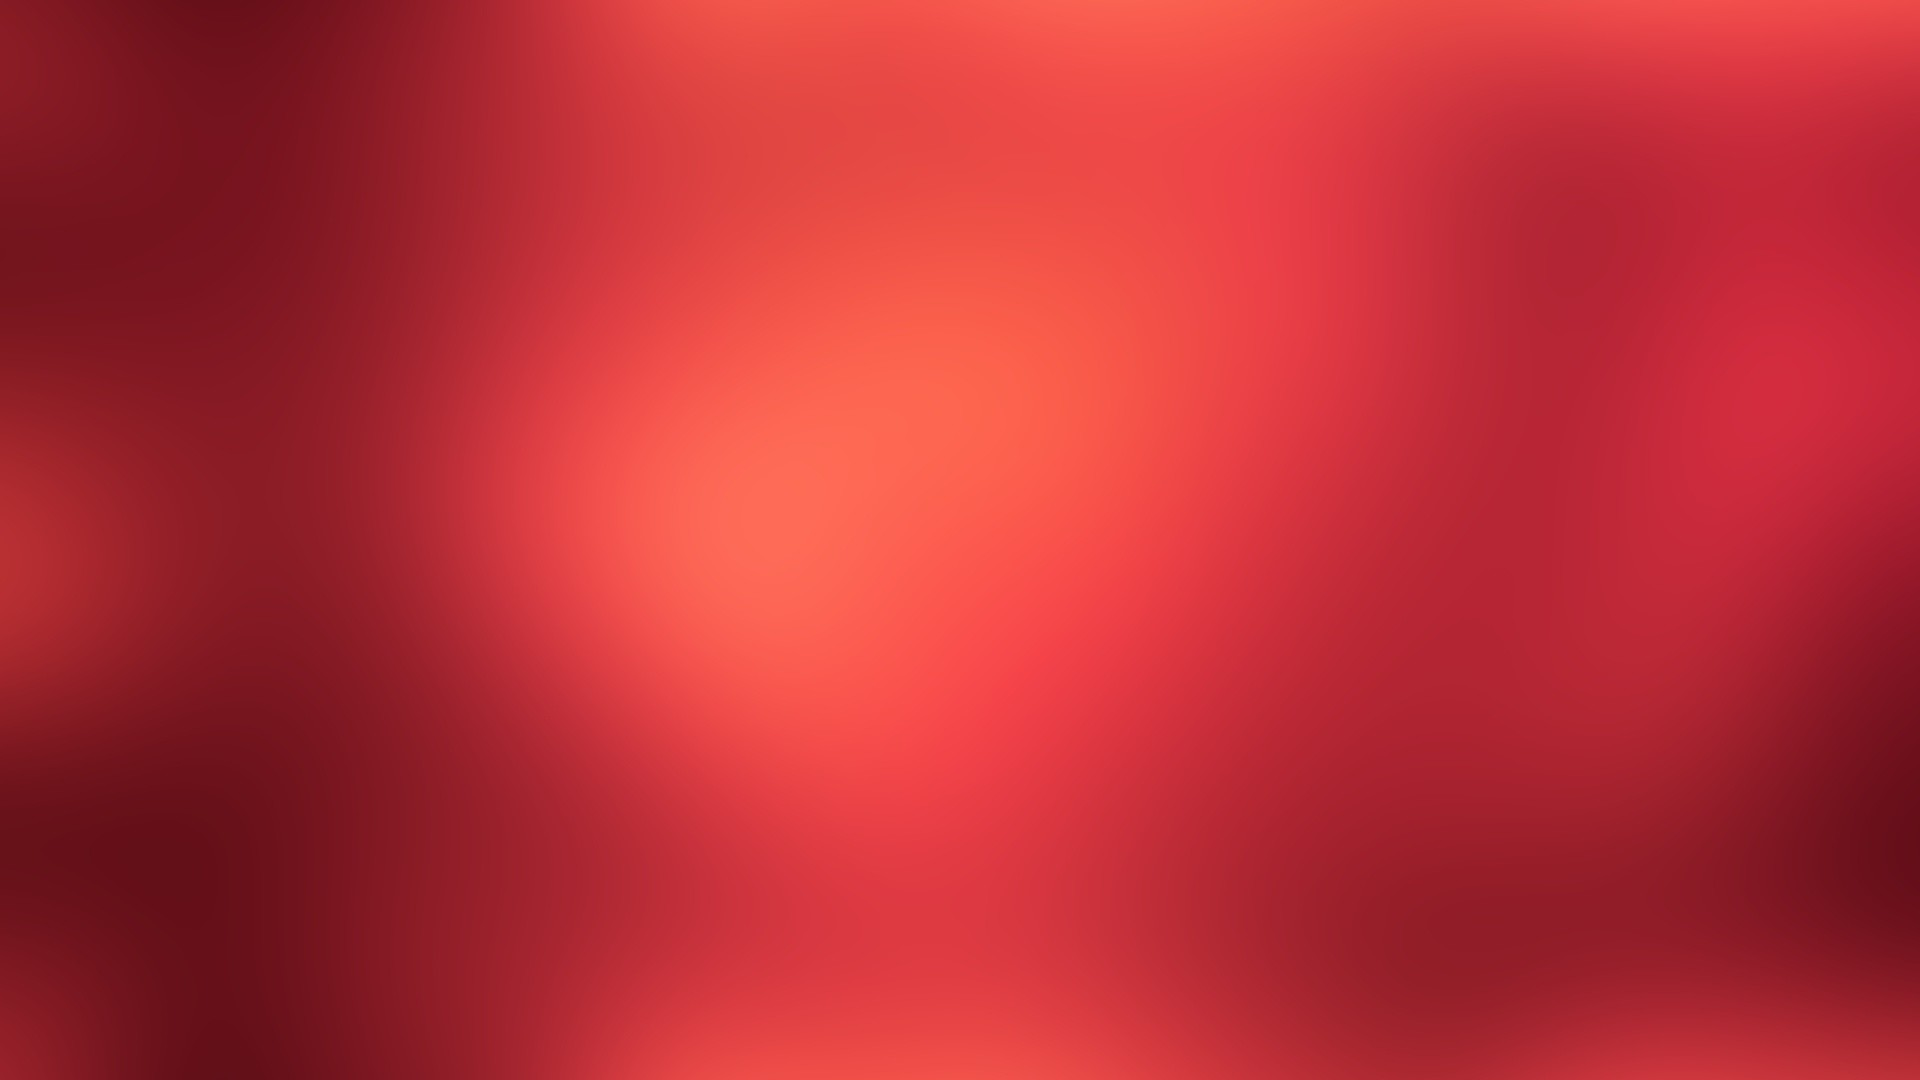 17 HD Solid Color Desktop Wallpapers For Free Download. solid